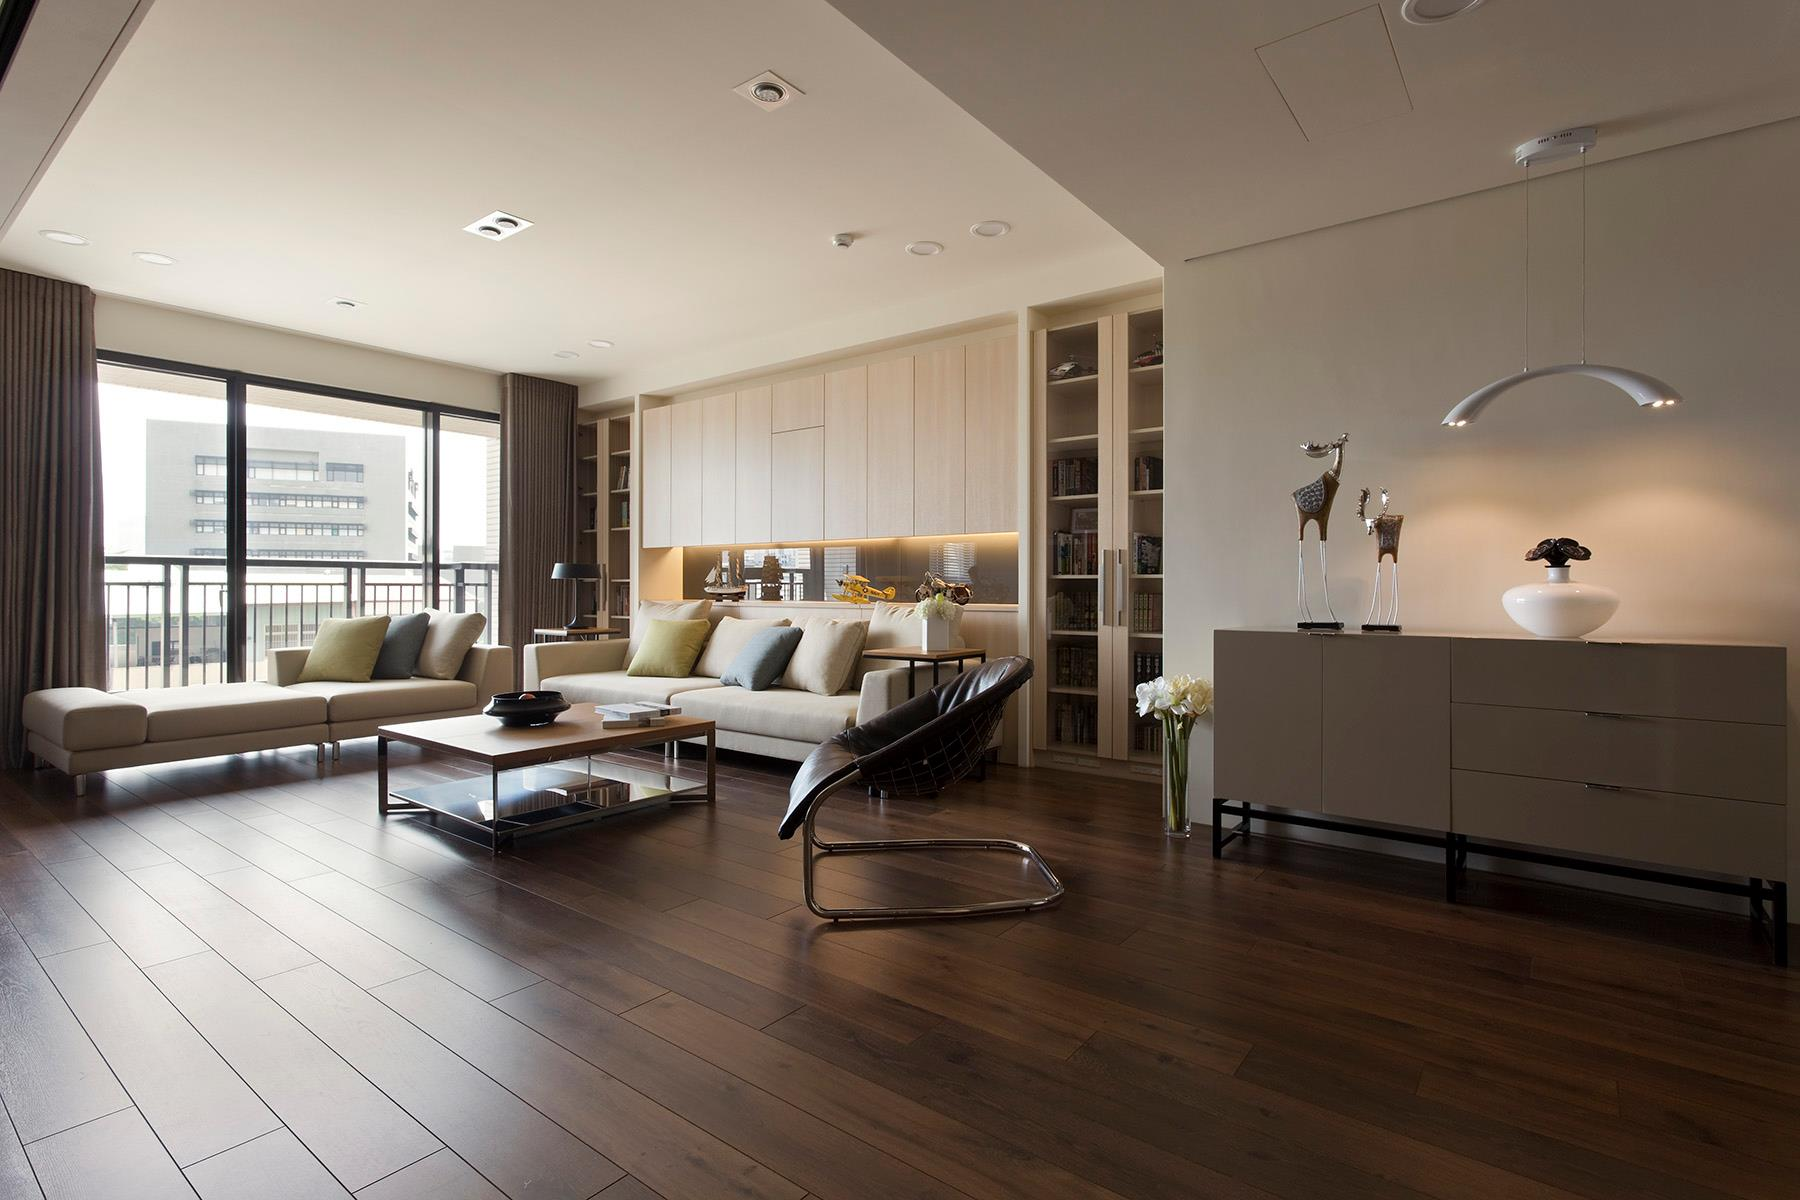 Apartment Living Room Ideas with Wood Floors 1800 x 1200